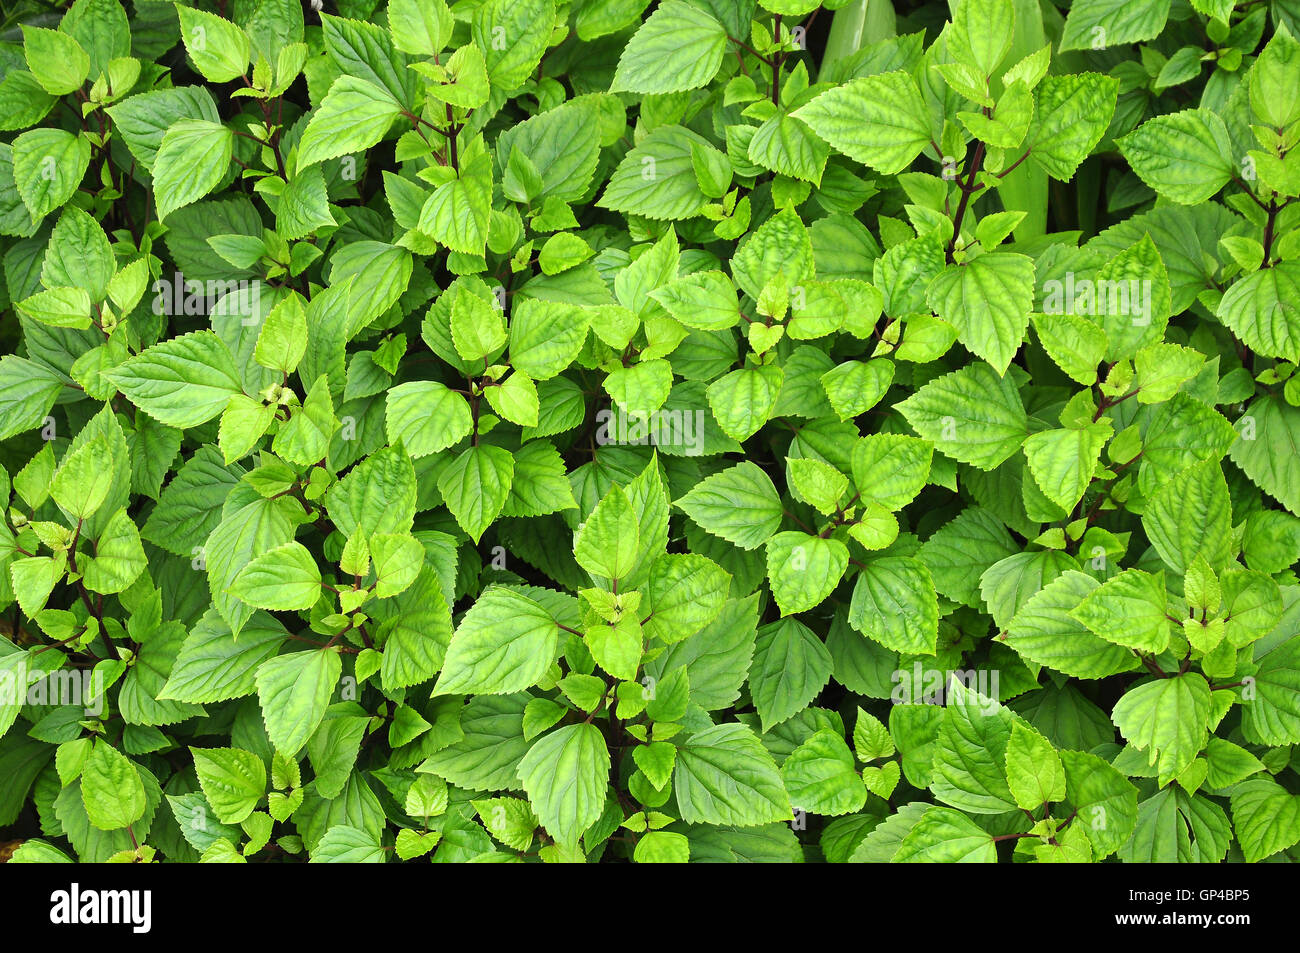 Green serrated  leaves - Stock Image